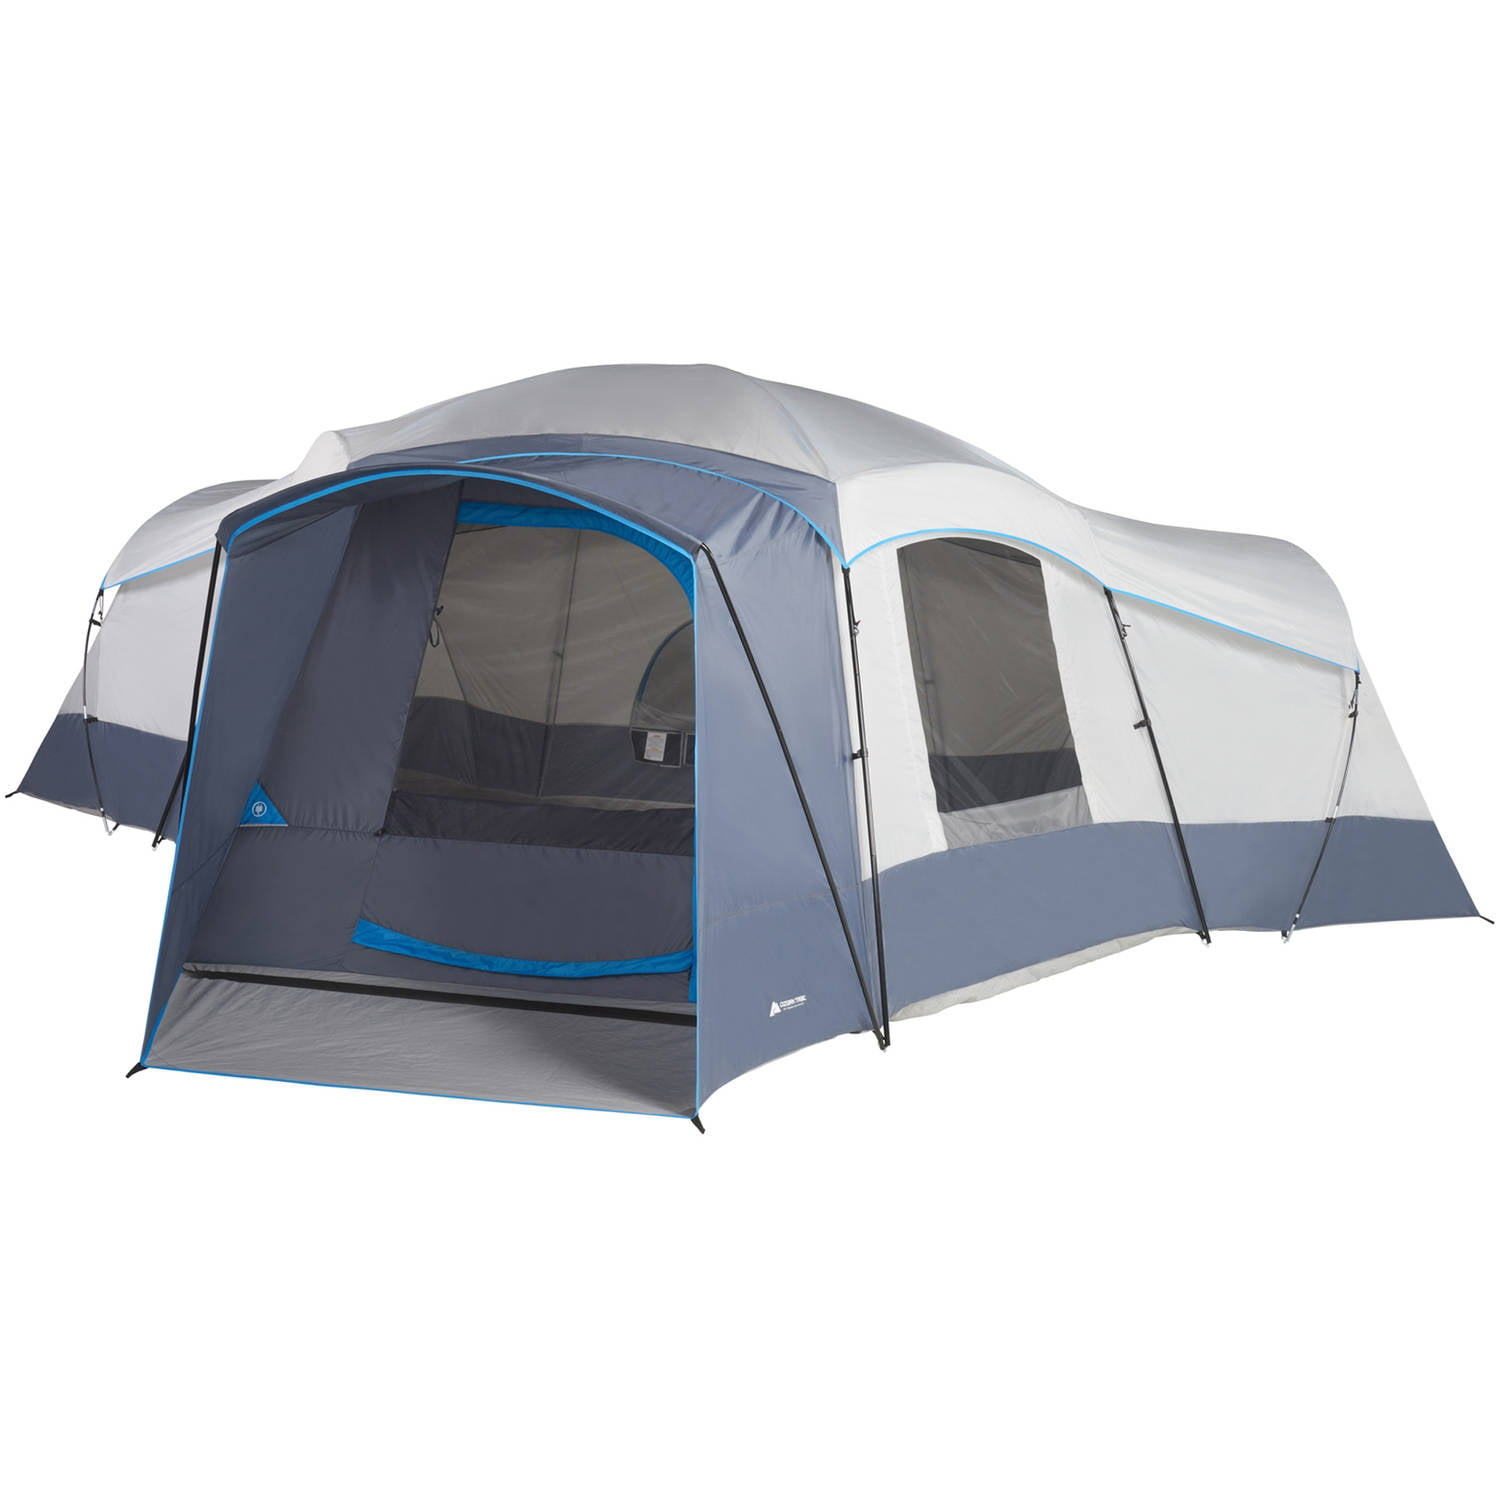 Ozark Trail 23.5' x 18.5' Cabin Tent, Sleeps 16 by Campex (BD) Limited